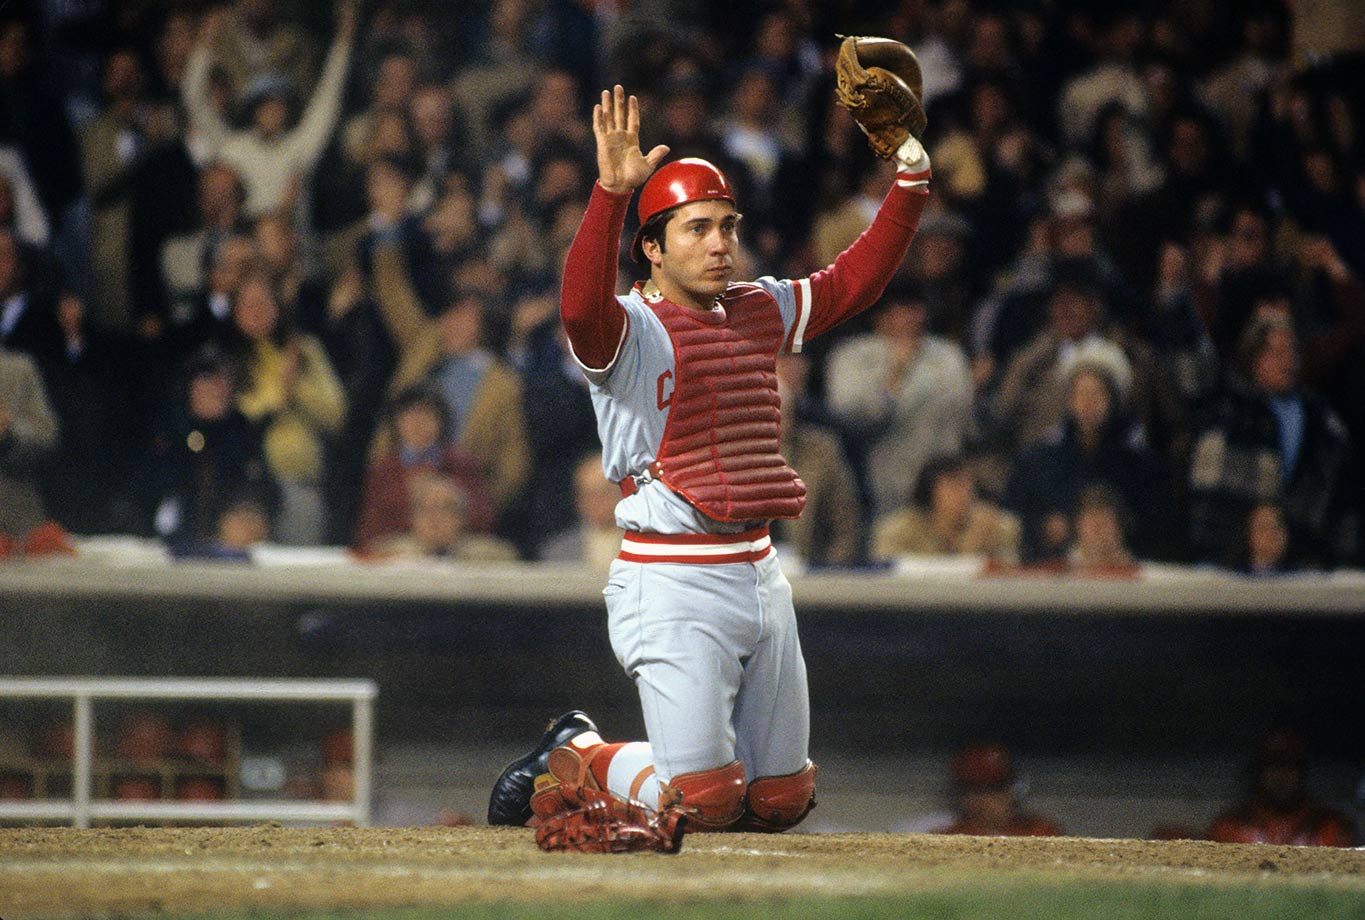 Oct. 21, 1976 — World Series, Game 4